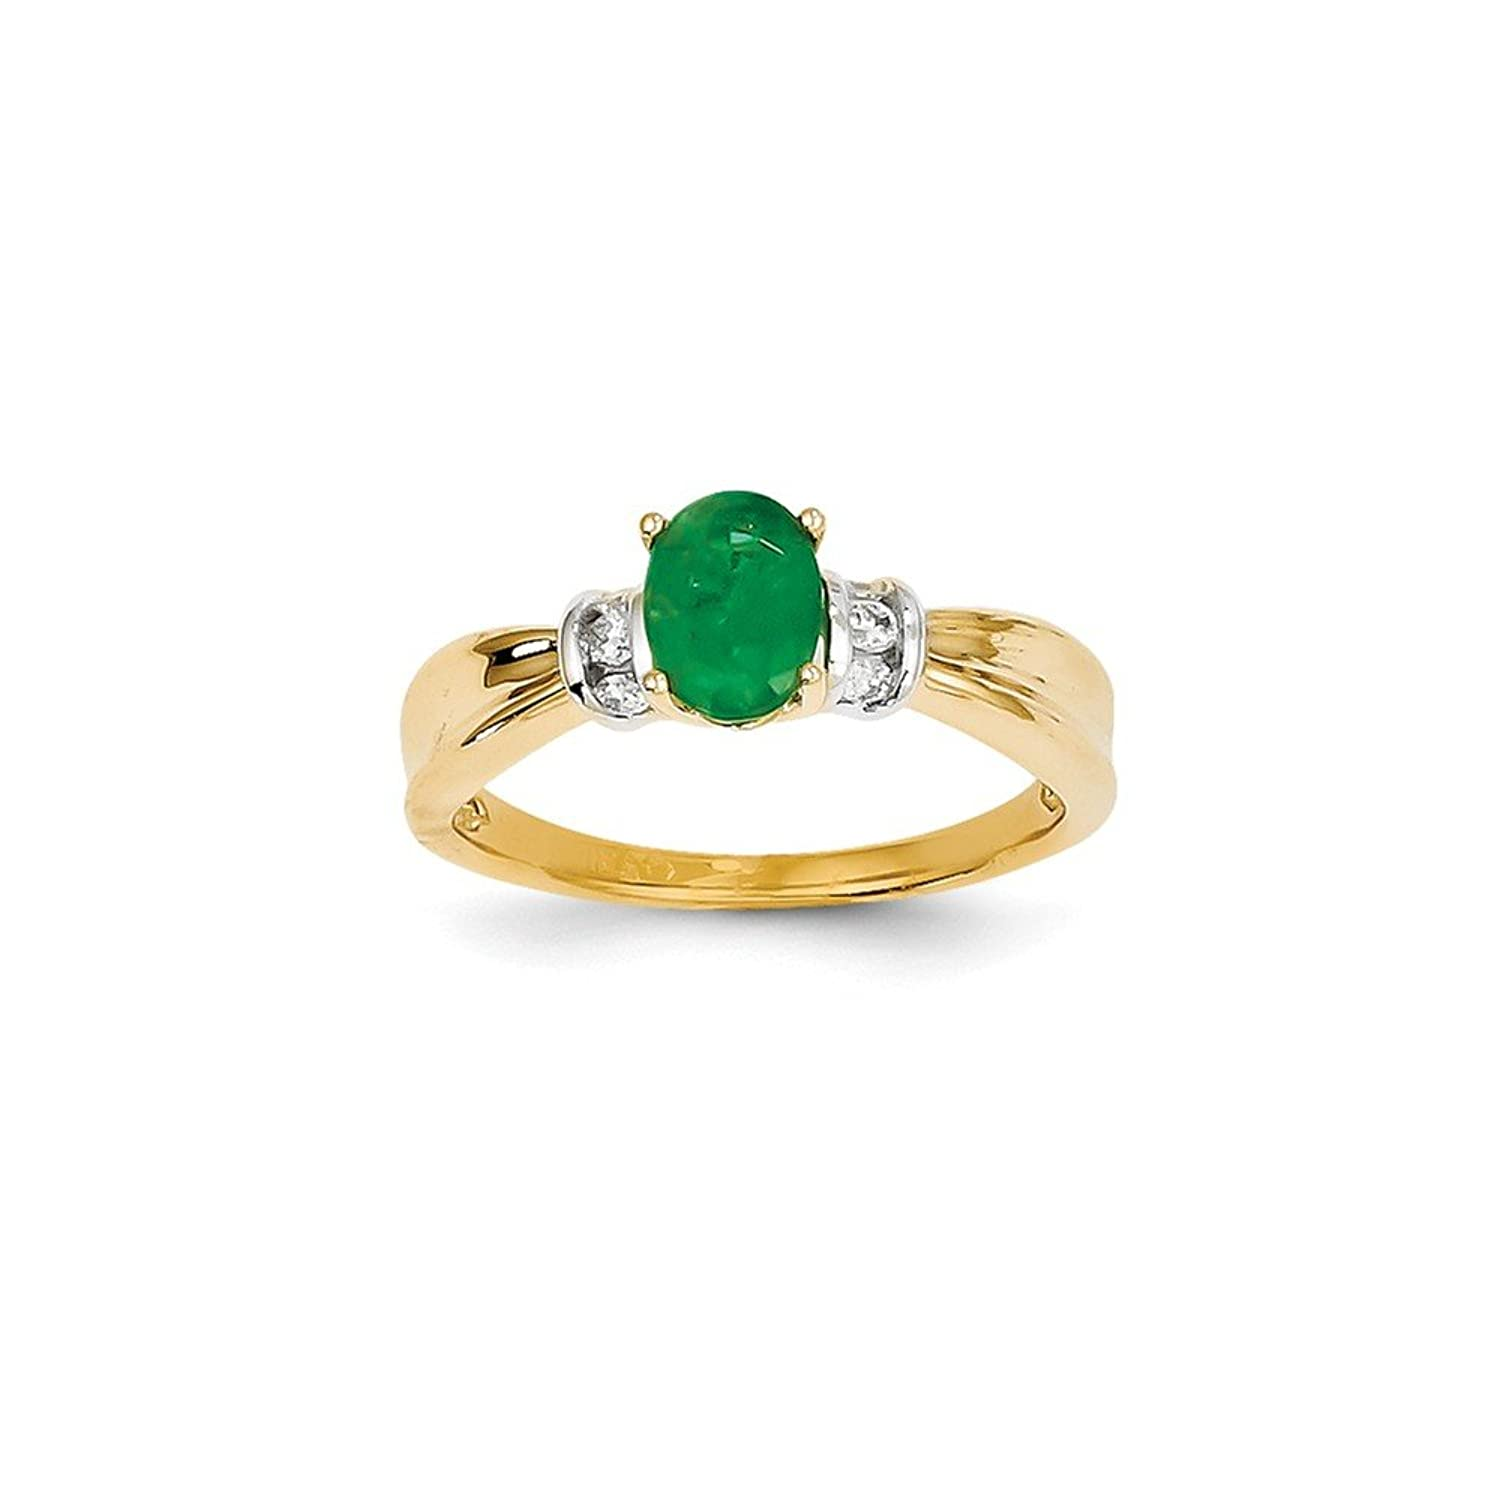 treated emerald valuable in gems world view polished gemstones elevated of the most colourful heat case